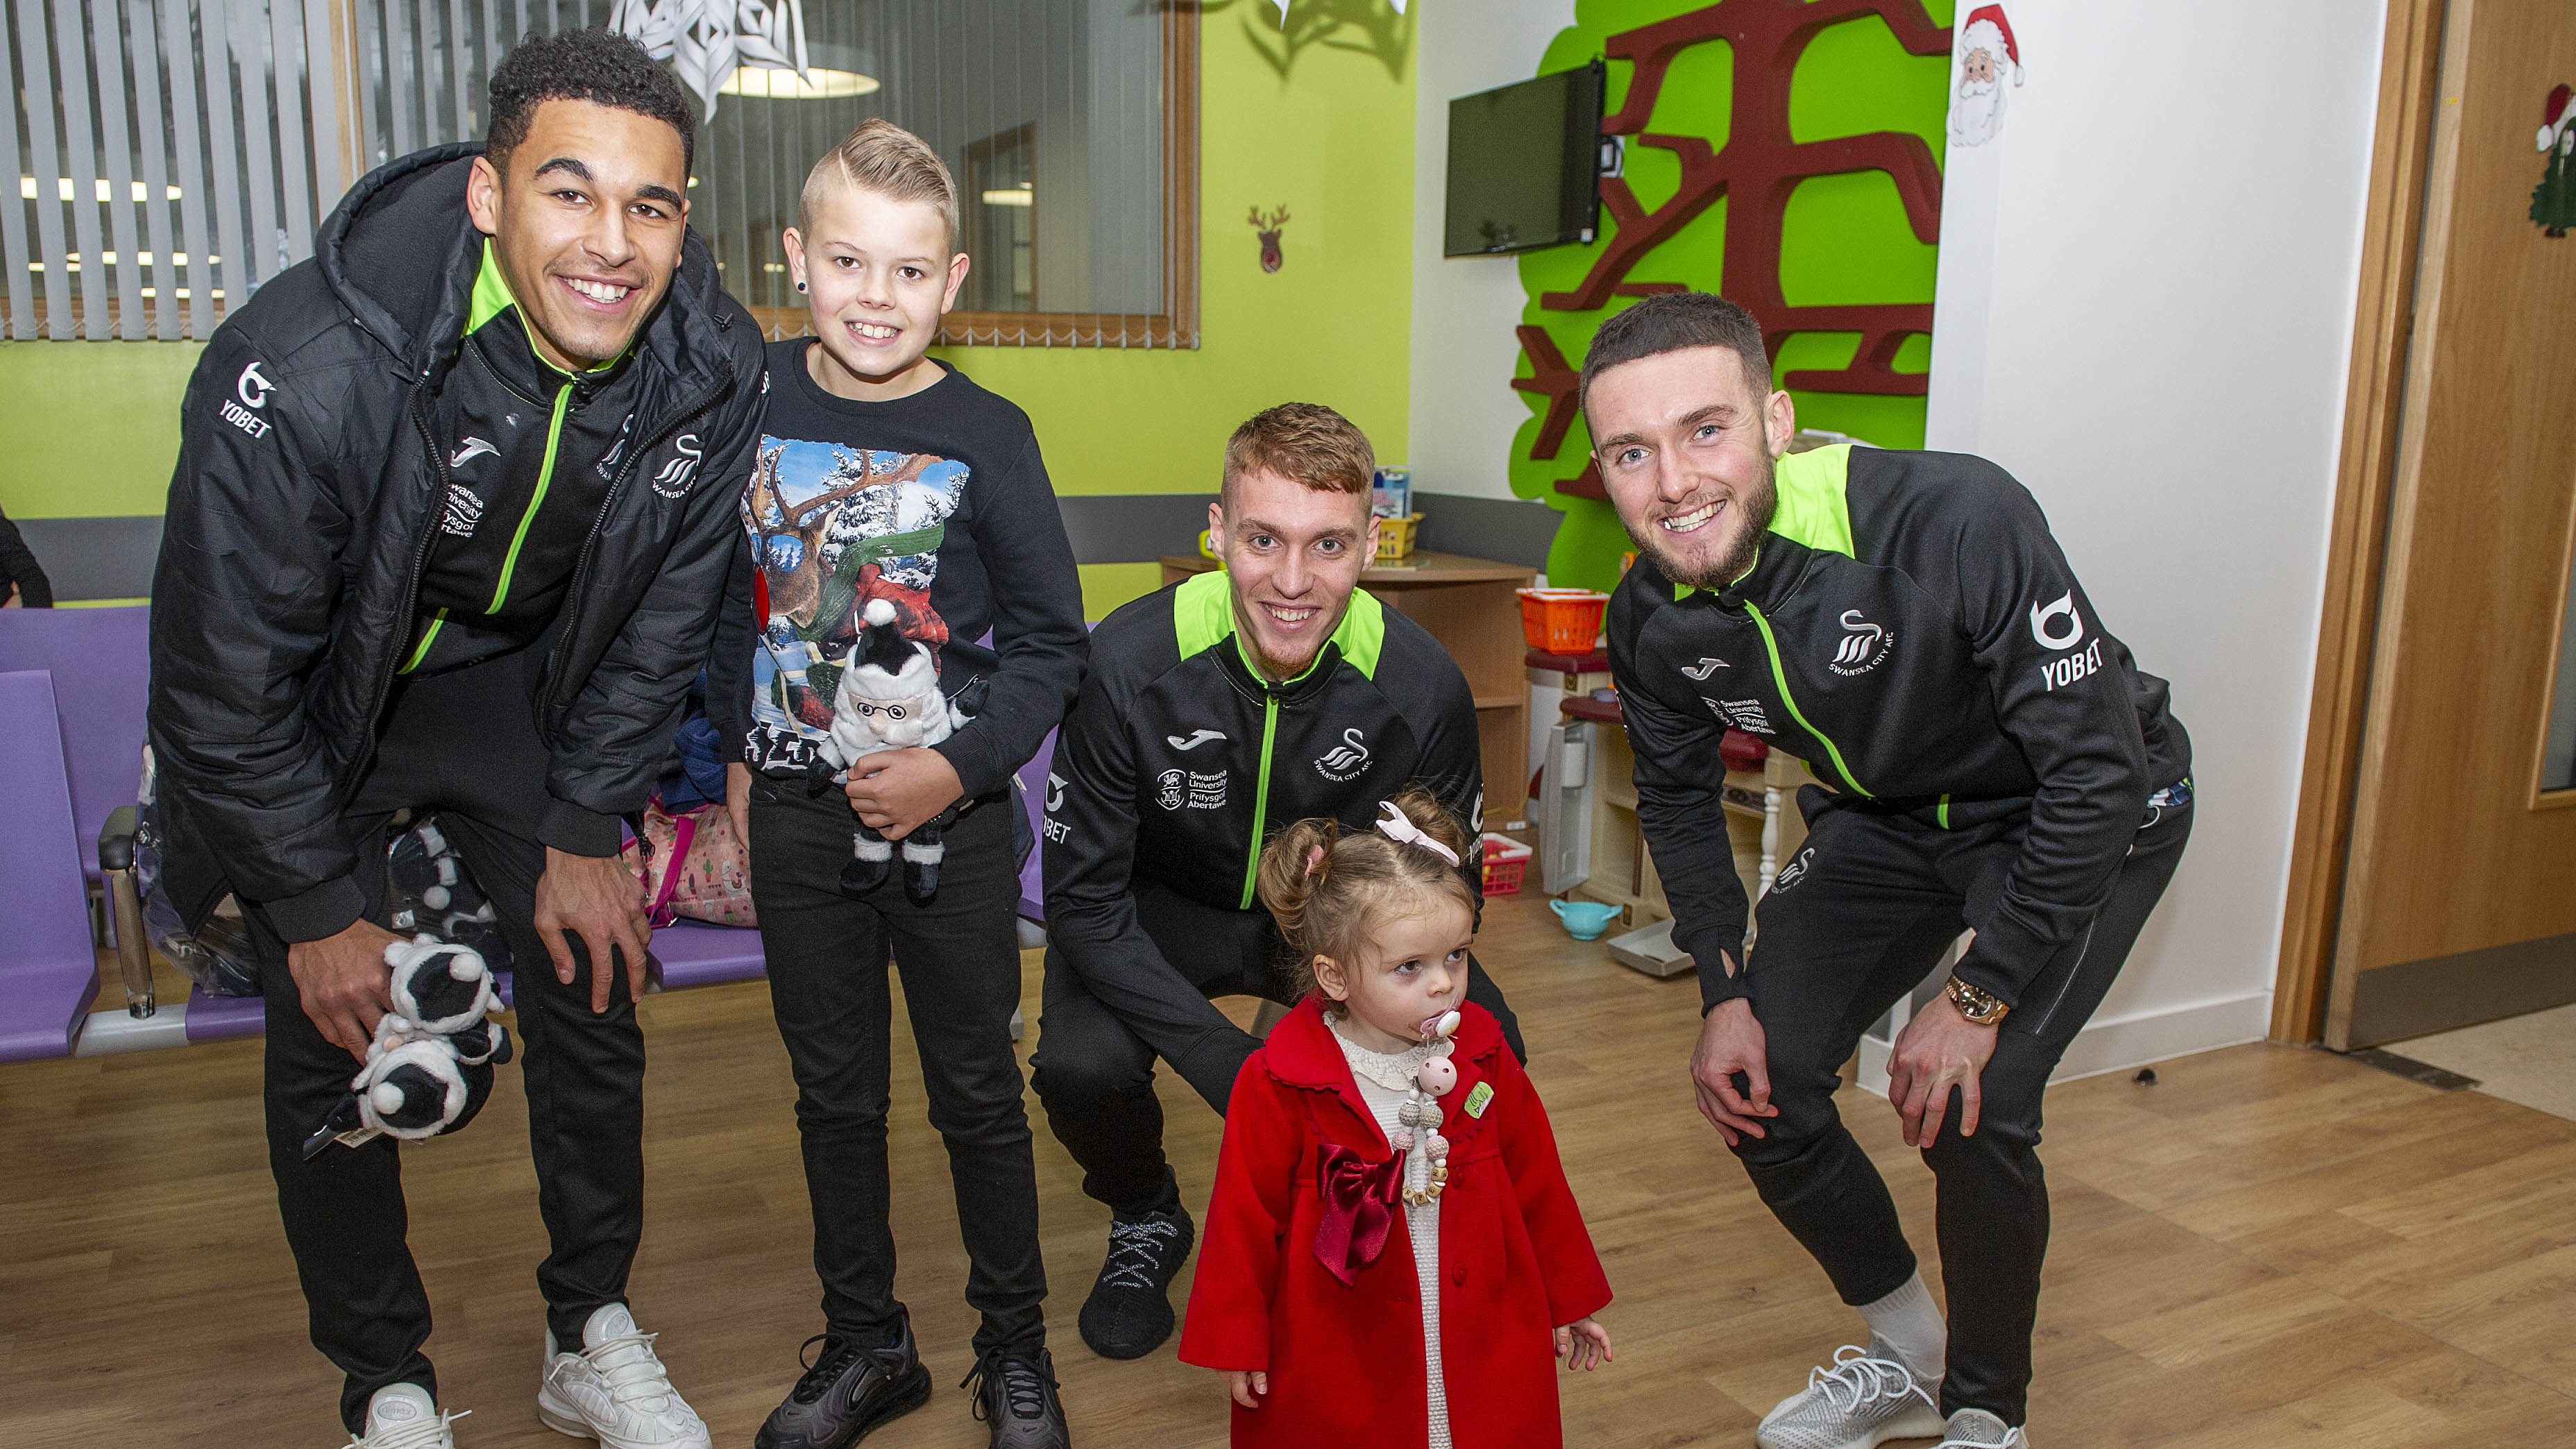 Swansea City squad visiting children at Morrison Hospital